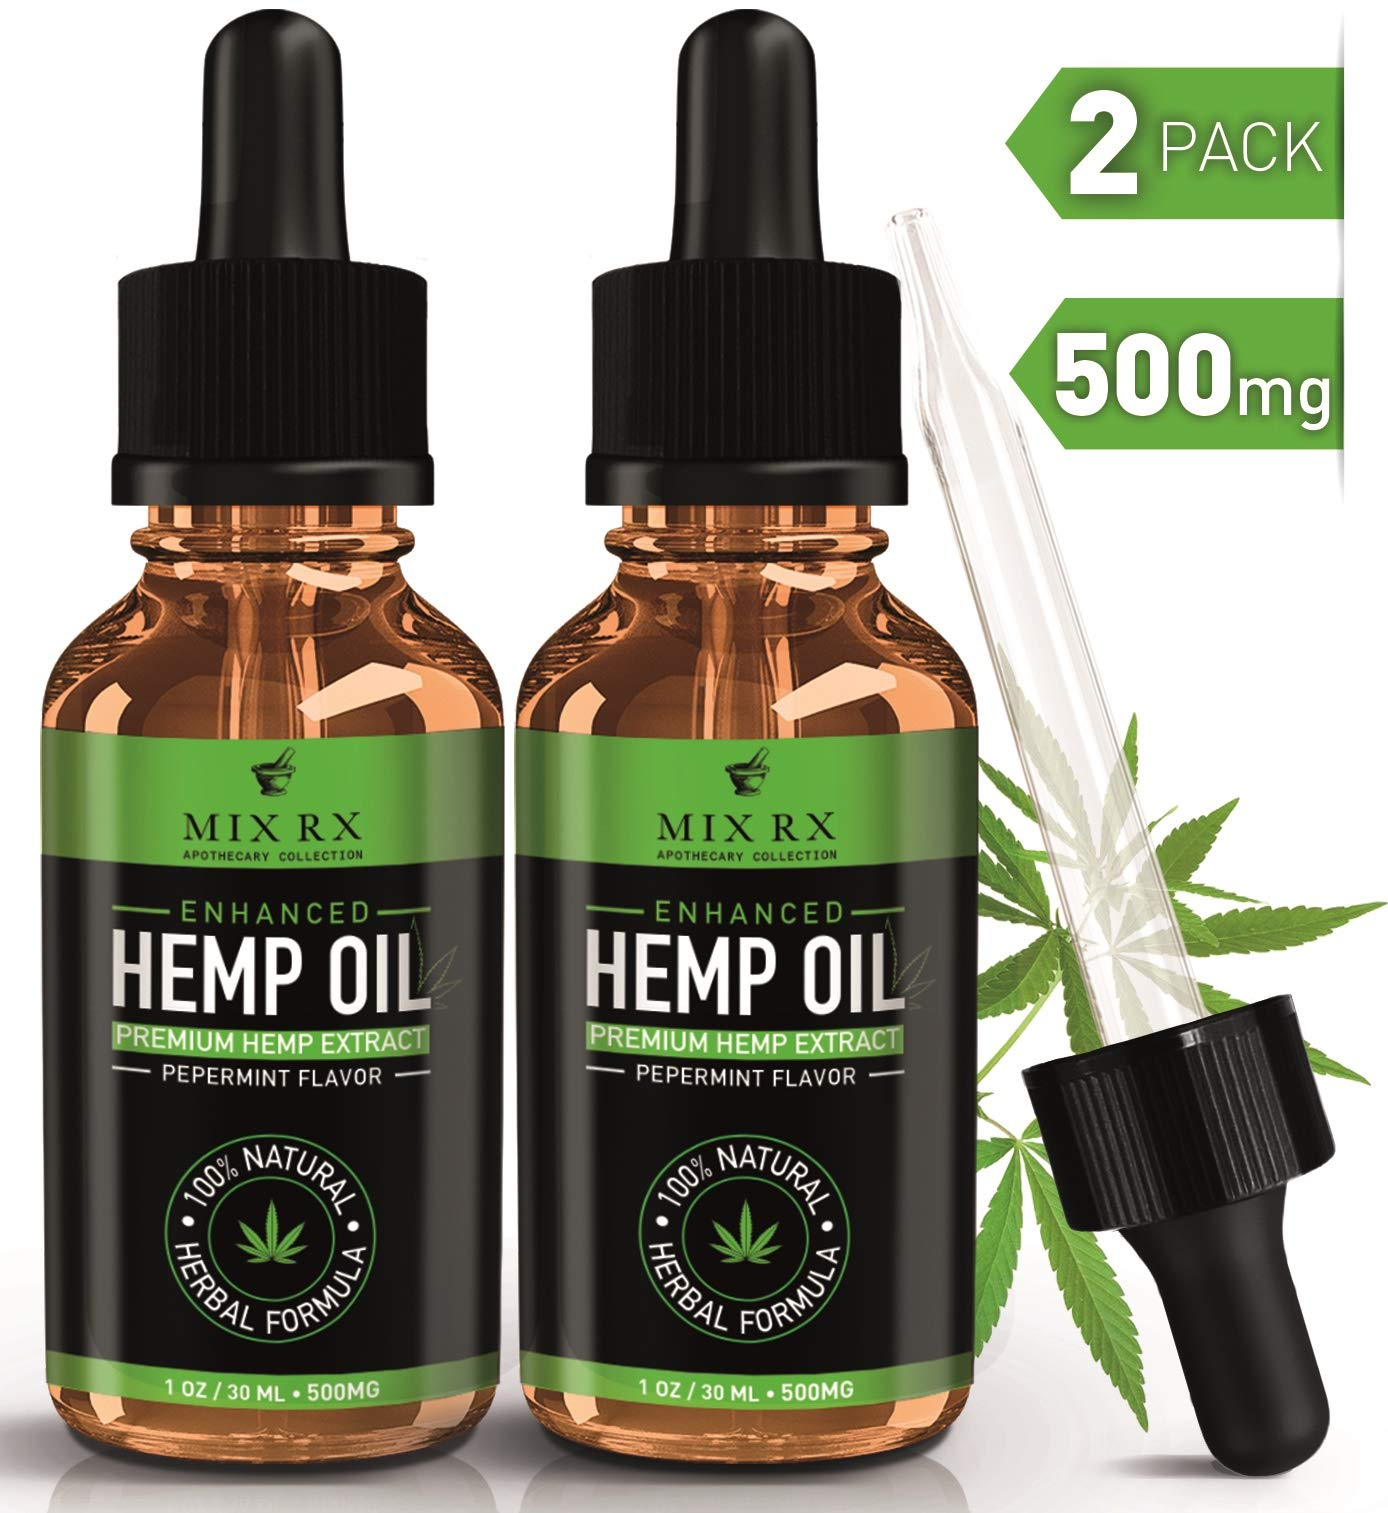 (2 Pack) Hemp Oil for Pain Relief Anxiety Sleep Support (500mg | 30ml) Natural Organic Hemp Seed Full Spectrum Extract - Zero THC or CBD Cannabidiol - Best Pure Herbal Supplements - Tincture Oil Drops